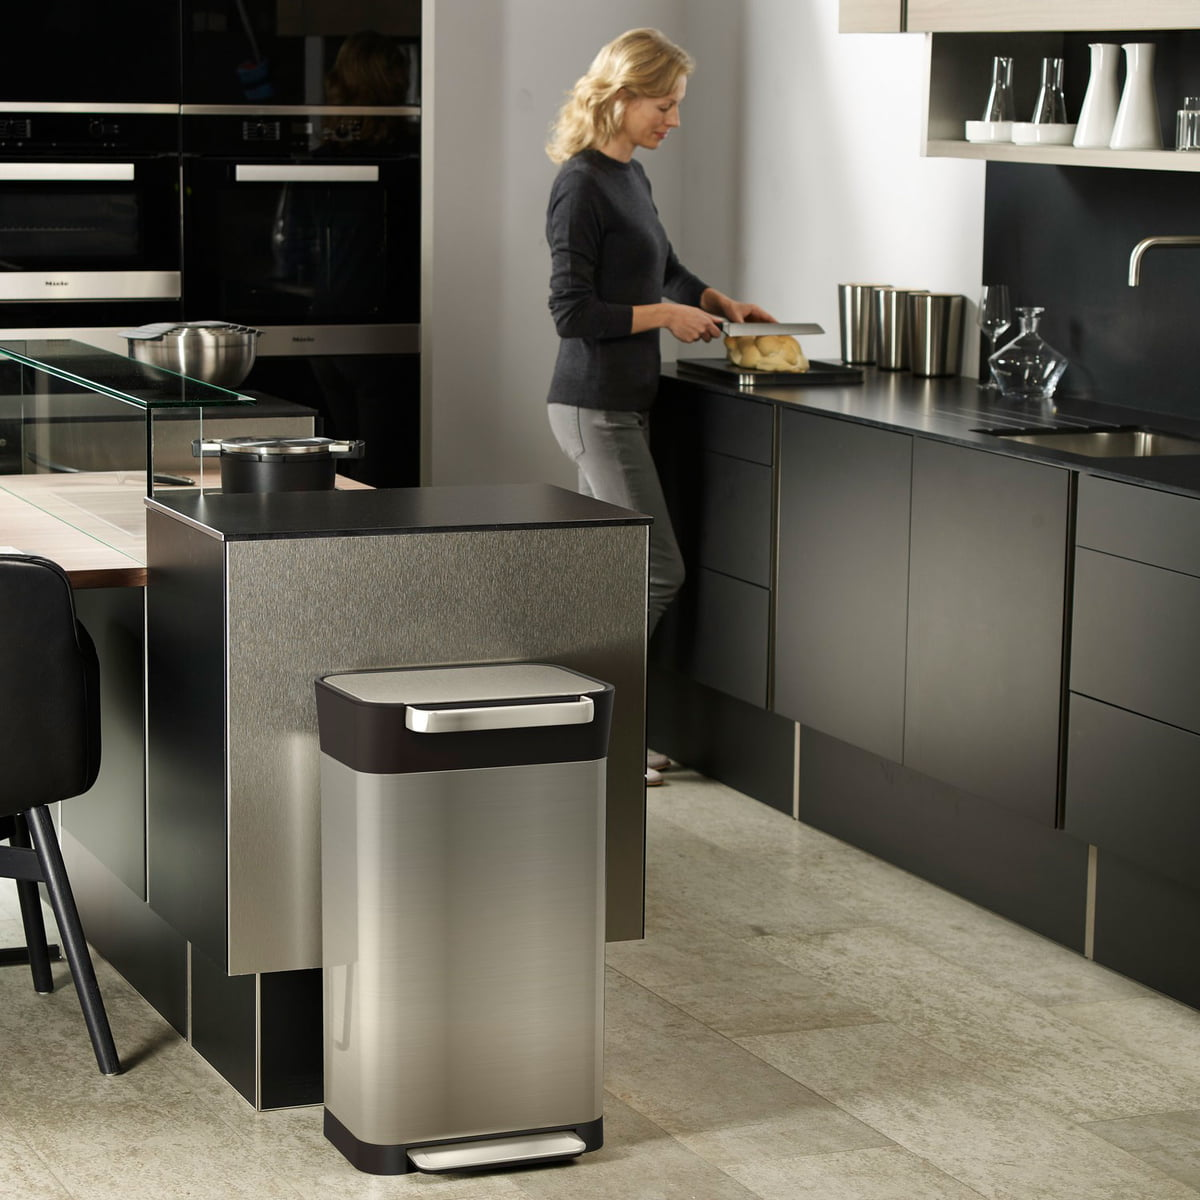 Elegant Stainless Steel Bin For The Kitchen